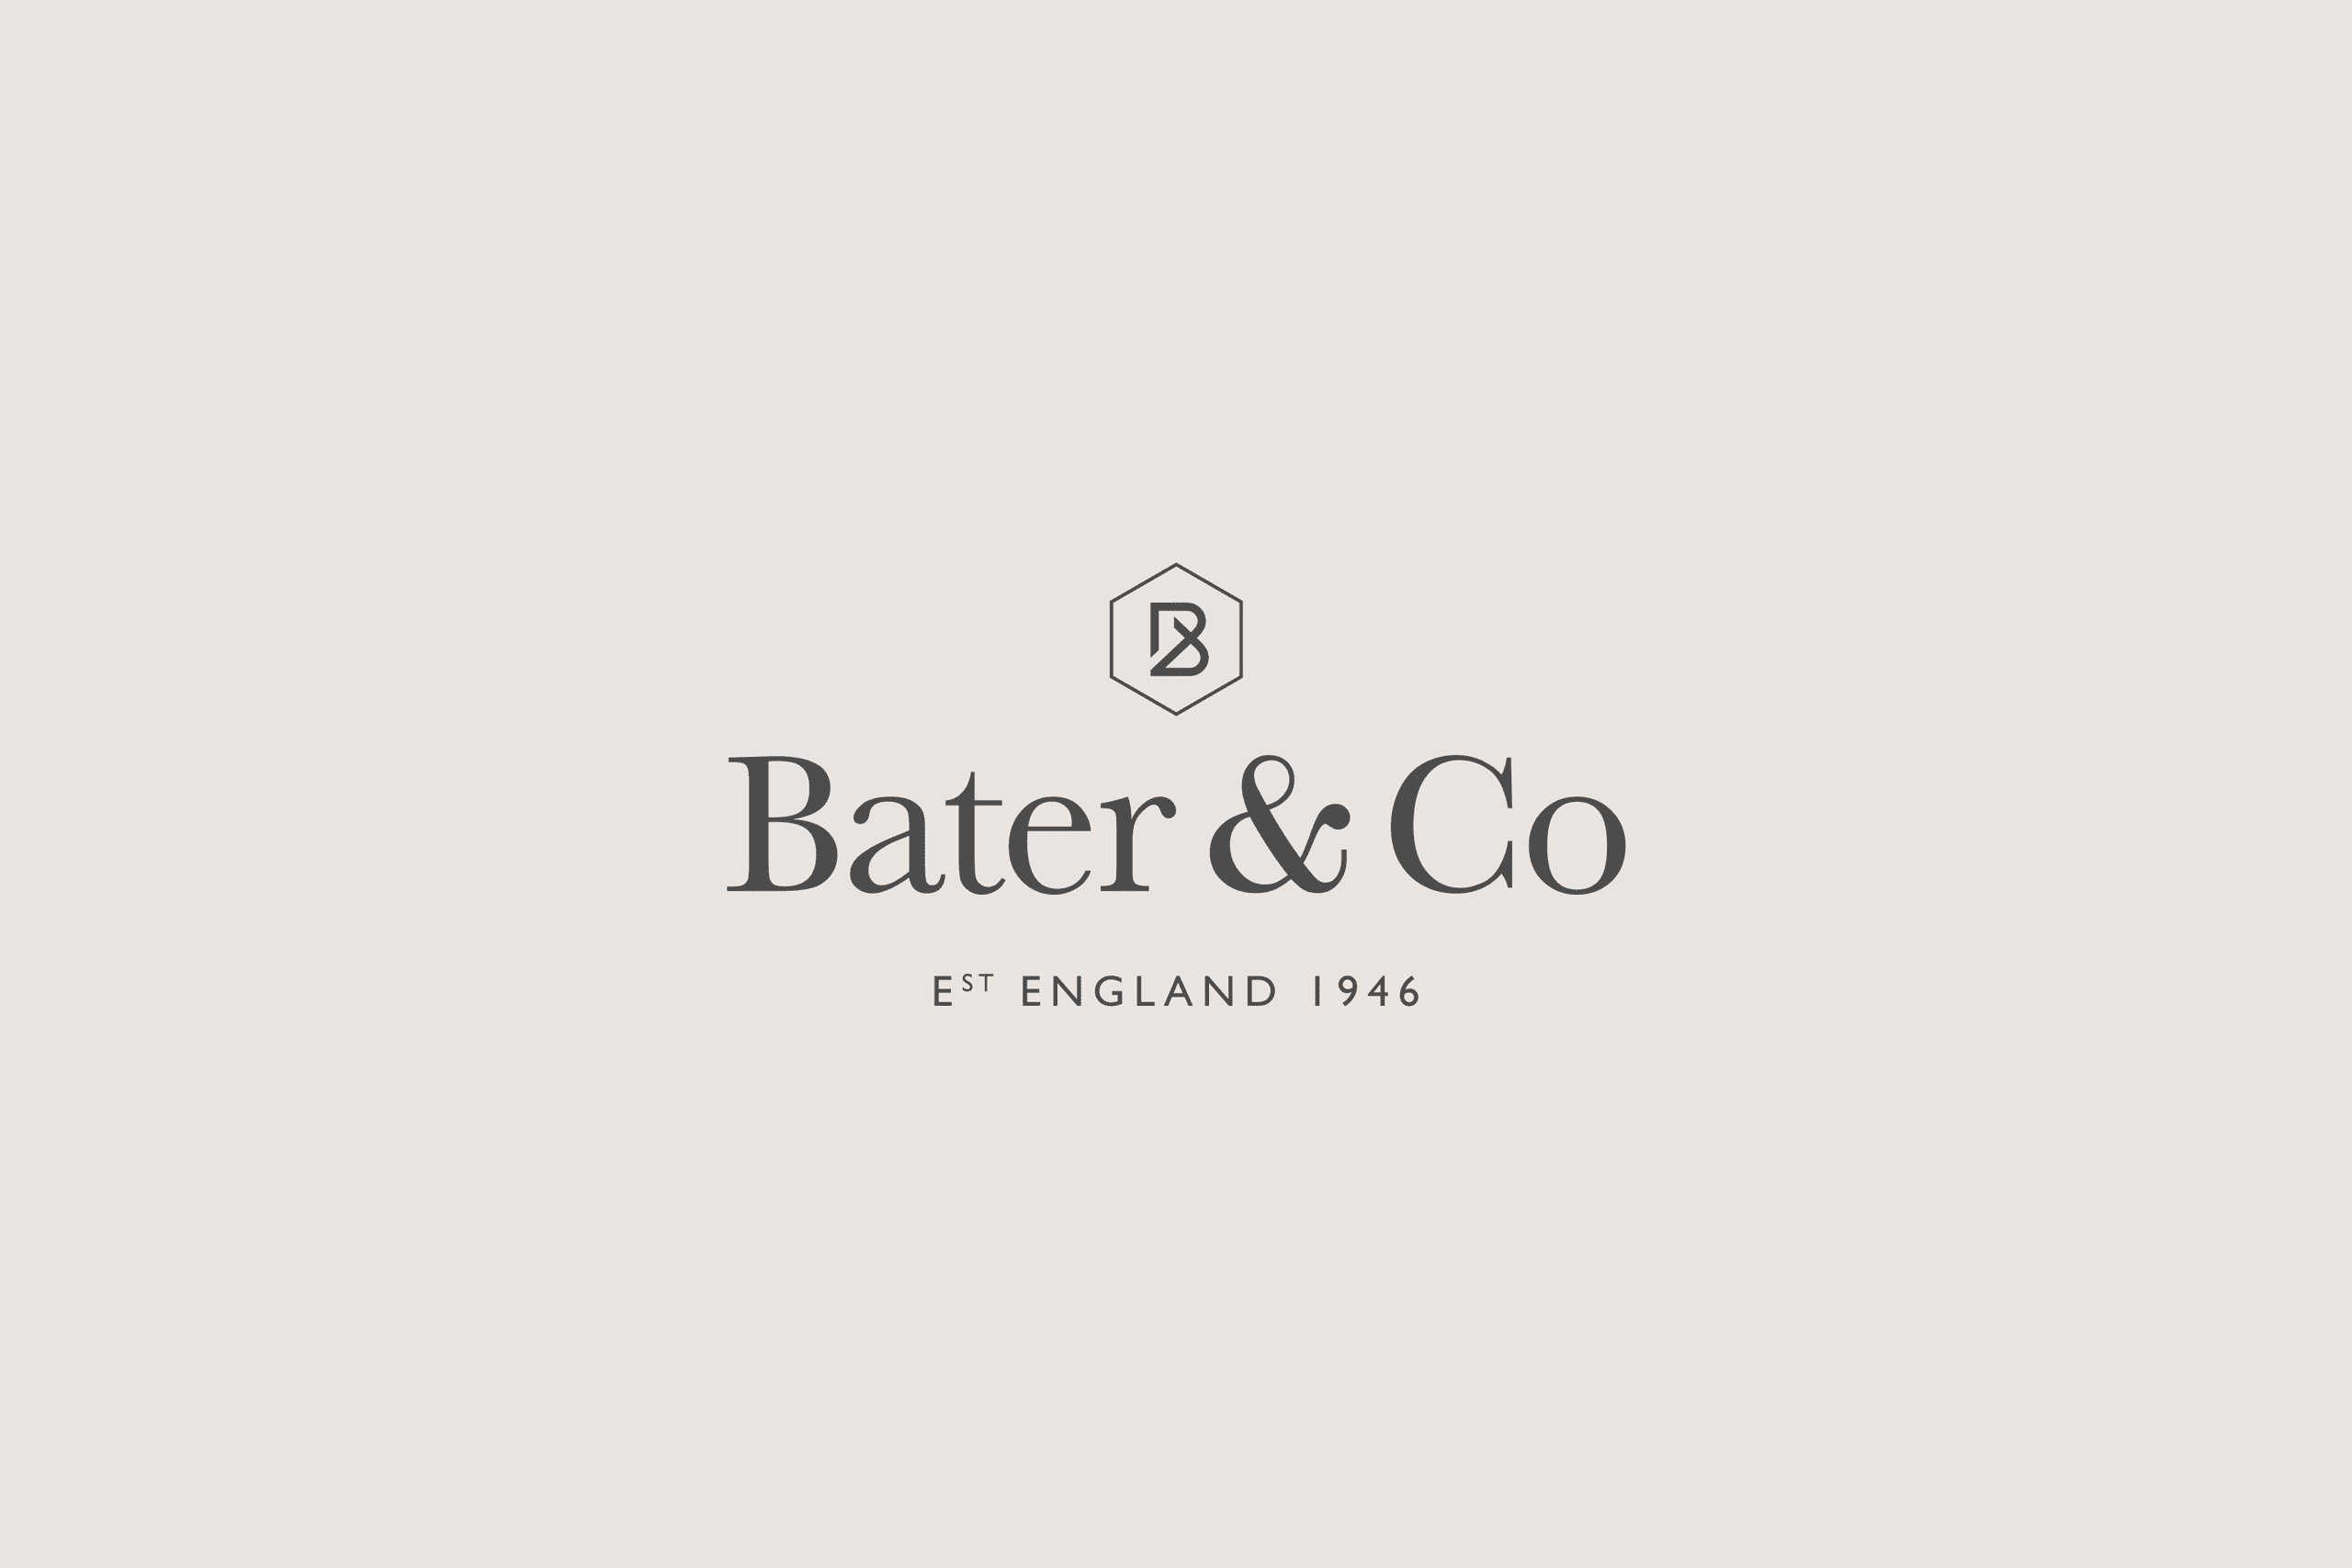 Lucury kitchen maker Bater & Co brand identity logo